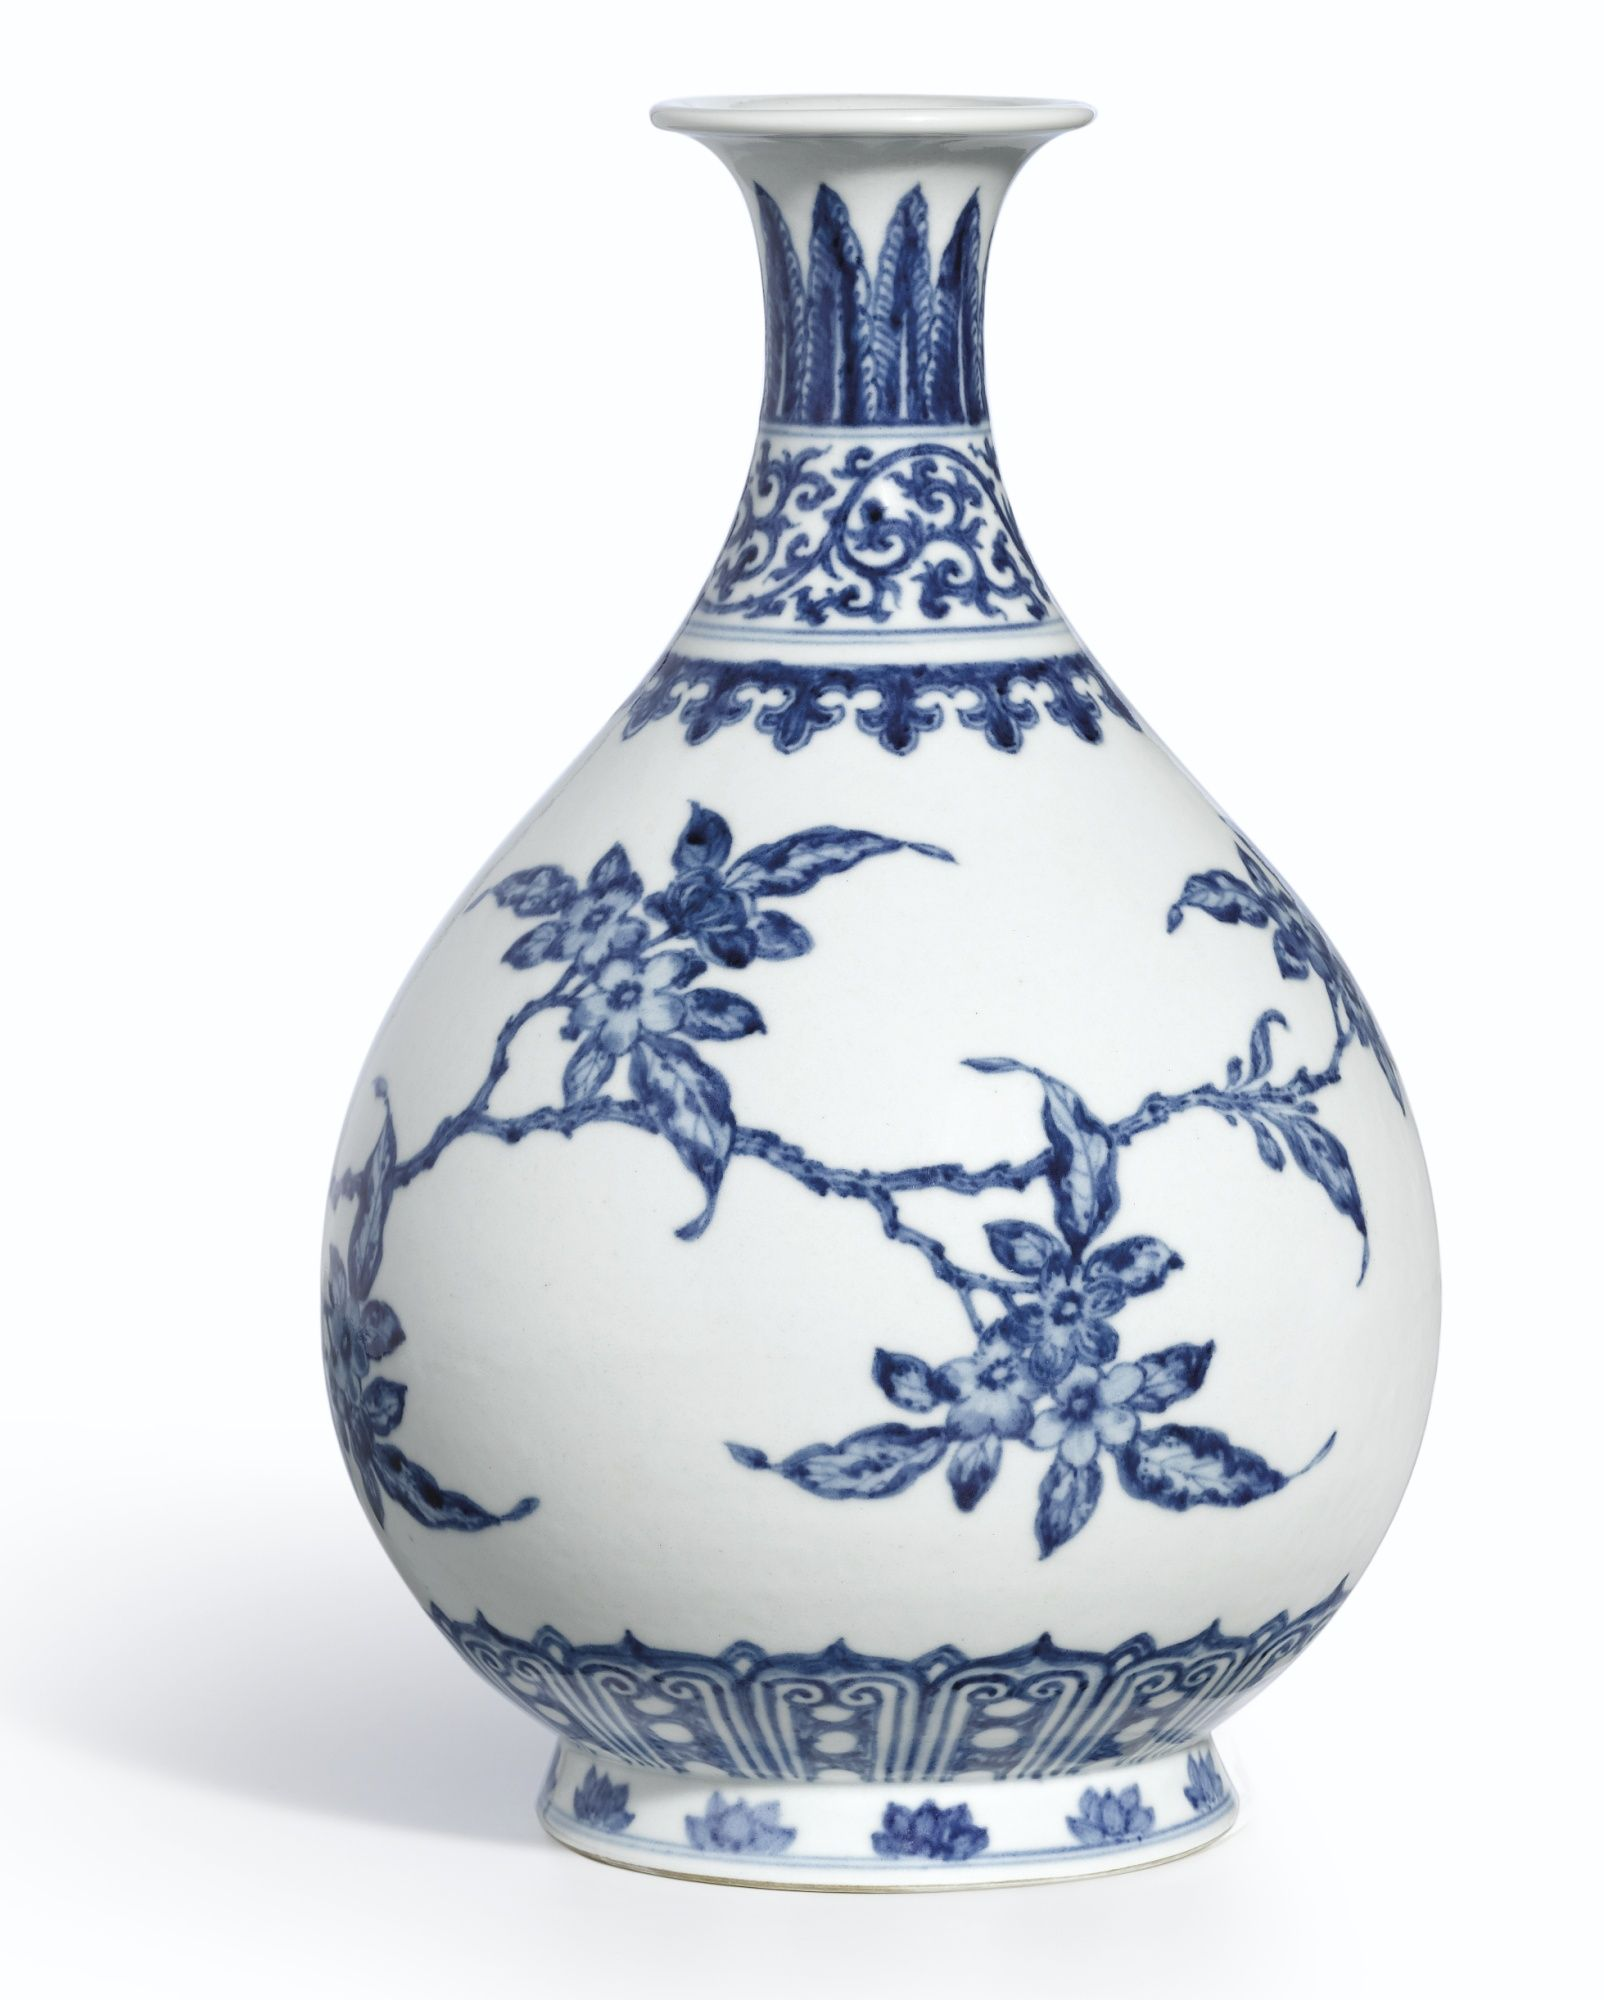 A rare ming style blue and white bird and flower vase a rare ming style blue and white bird and flower vase yuhuchunping mark and period of yongzheng another view reviewsmspy